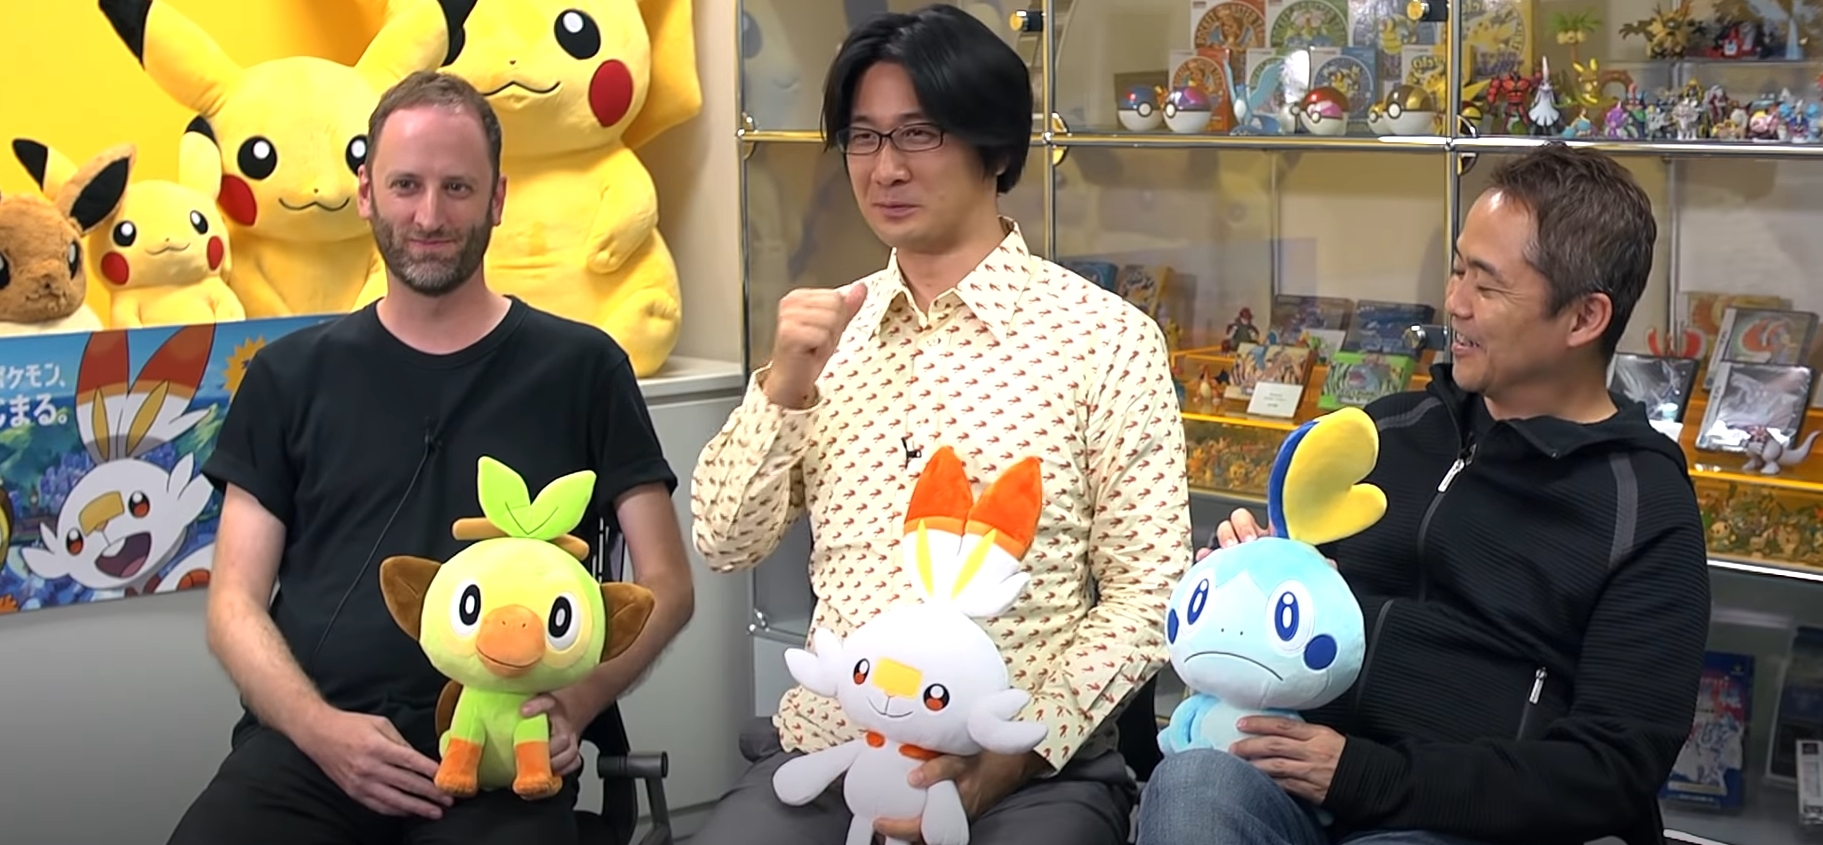 Pokemon Sword And Shield Devs Reveal More Details About Grookey Scorbunny And Sobble Dot Esports Indeed, grookey, scorbunny and sobble were the very first pokémon from the new game we glimpsed when sobble is inarguably the wettest starter here and he's not overflowing with charisma, but his. pokemon sword and shield devs reveal